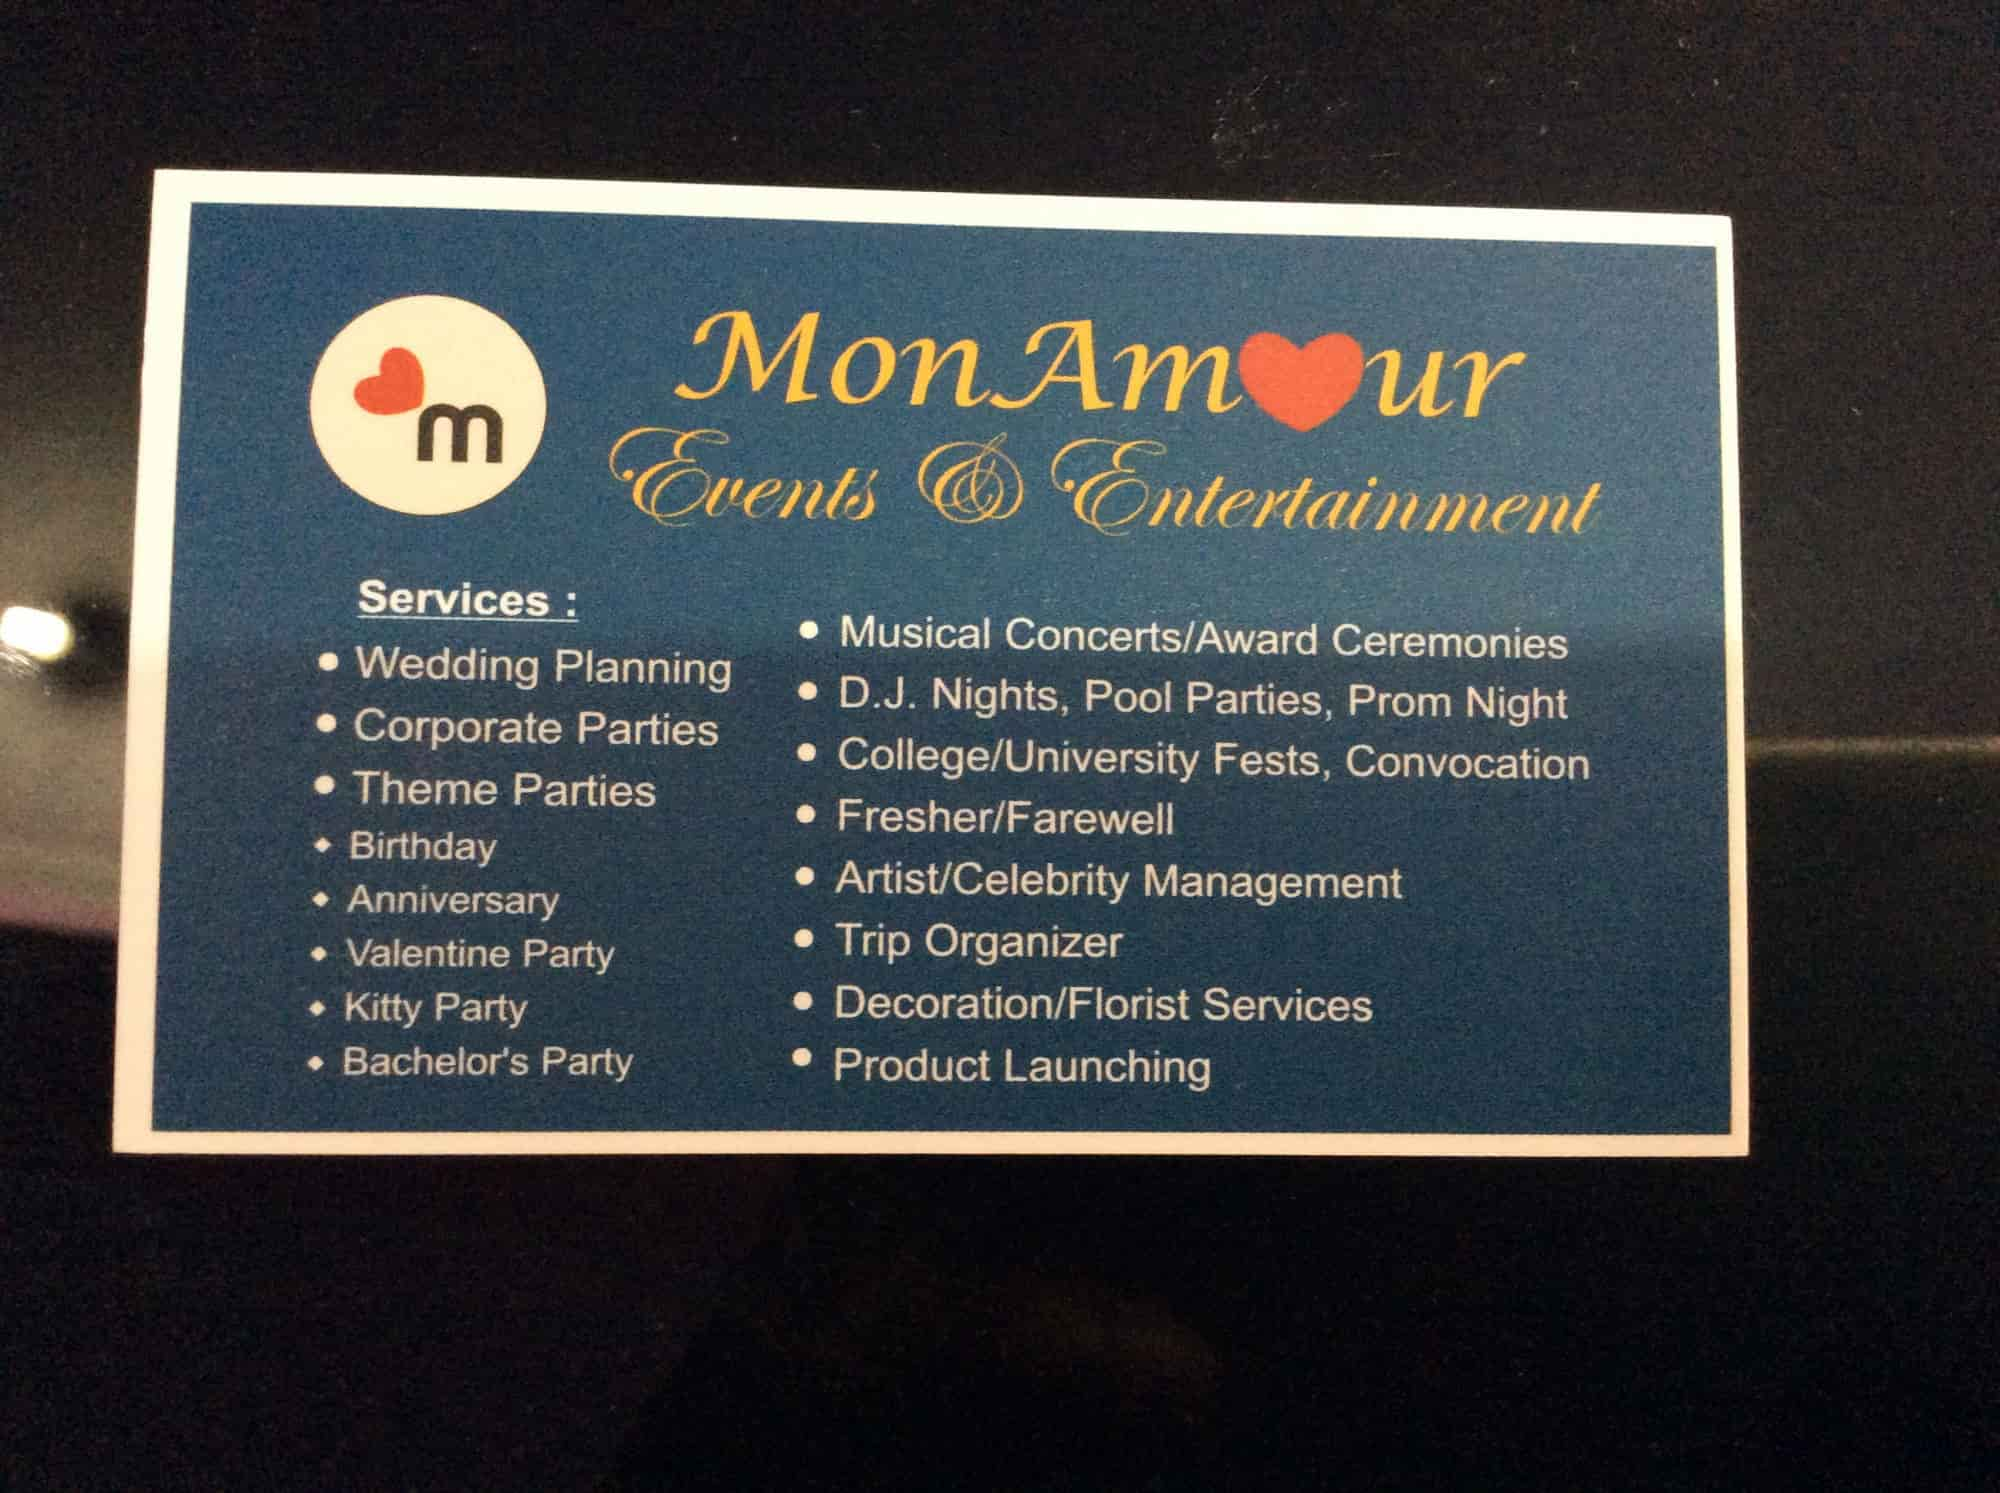 Mon Amour Event Entertainment Greater Noida Event Organisers